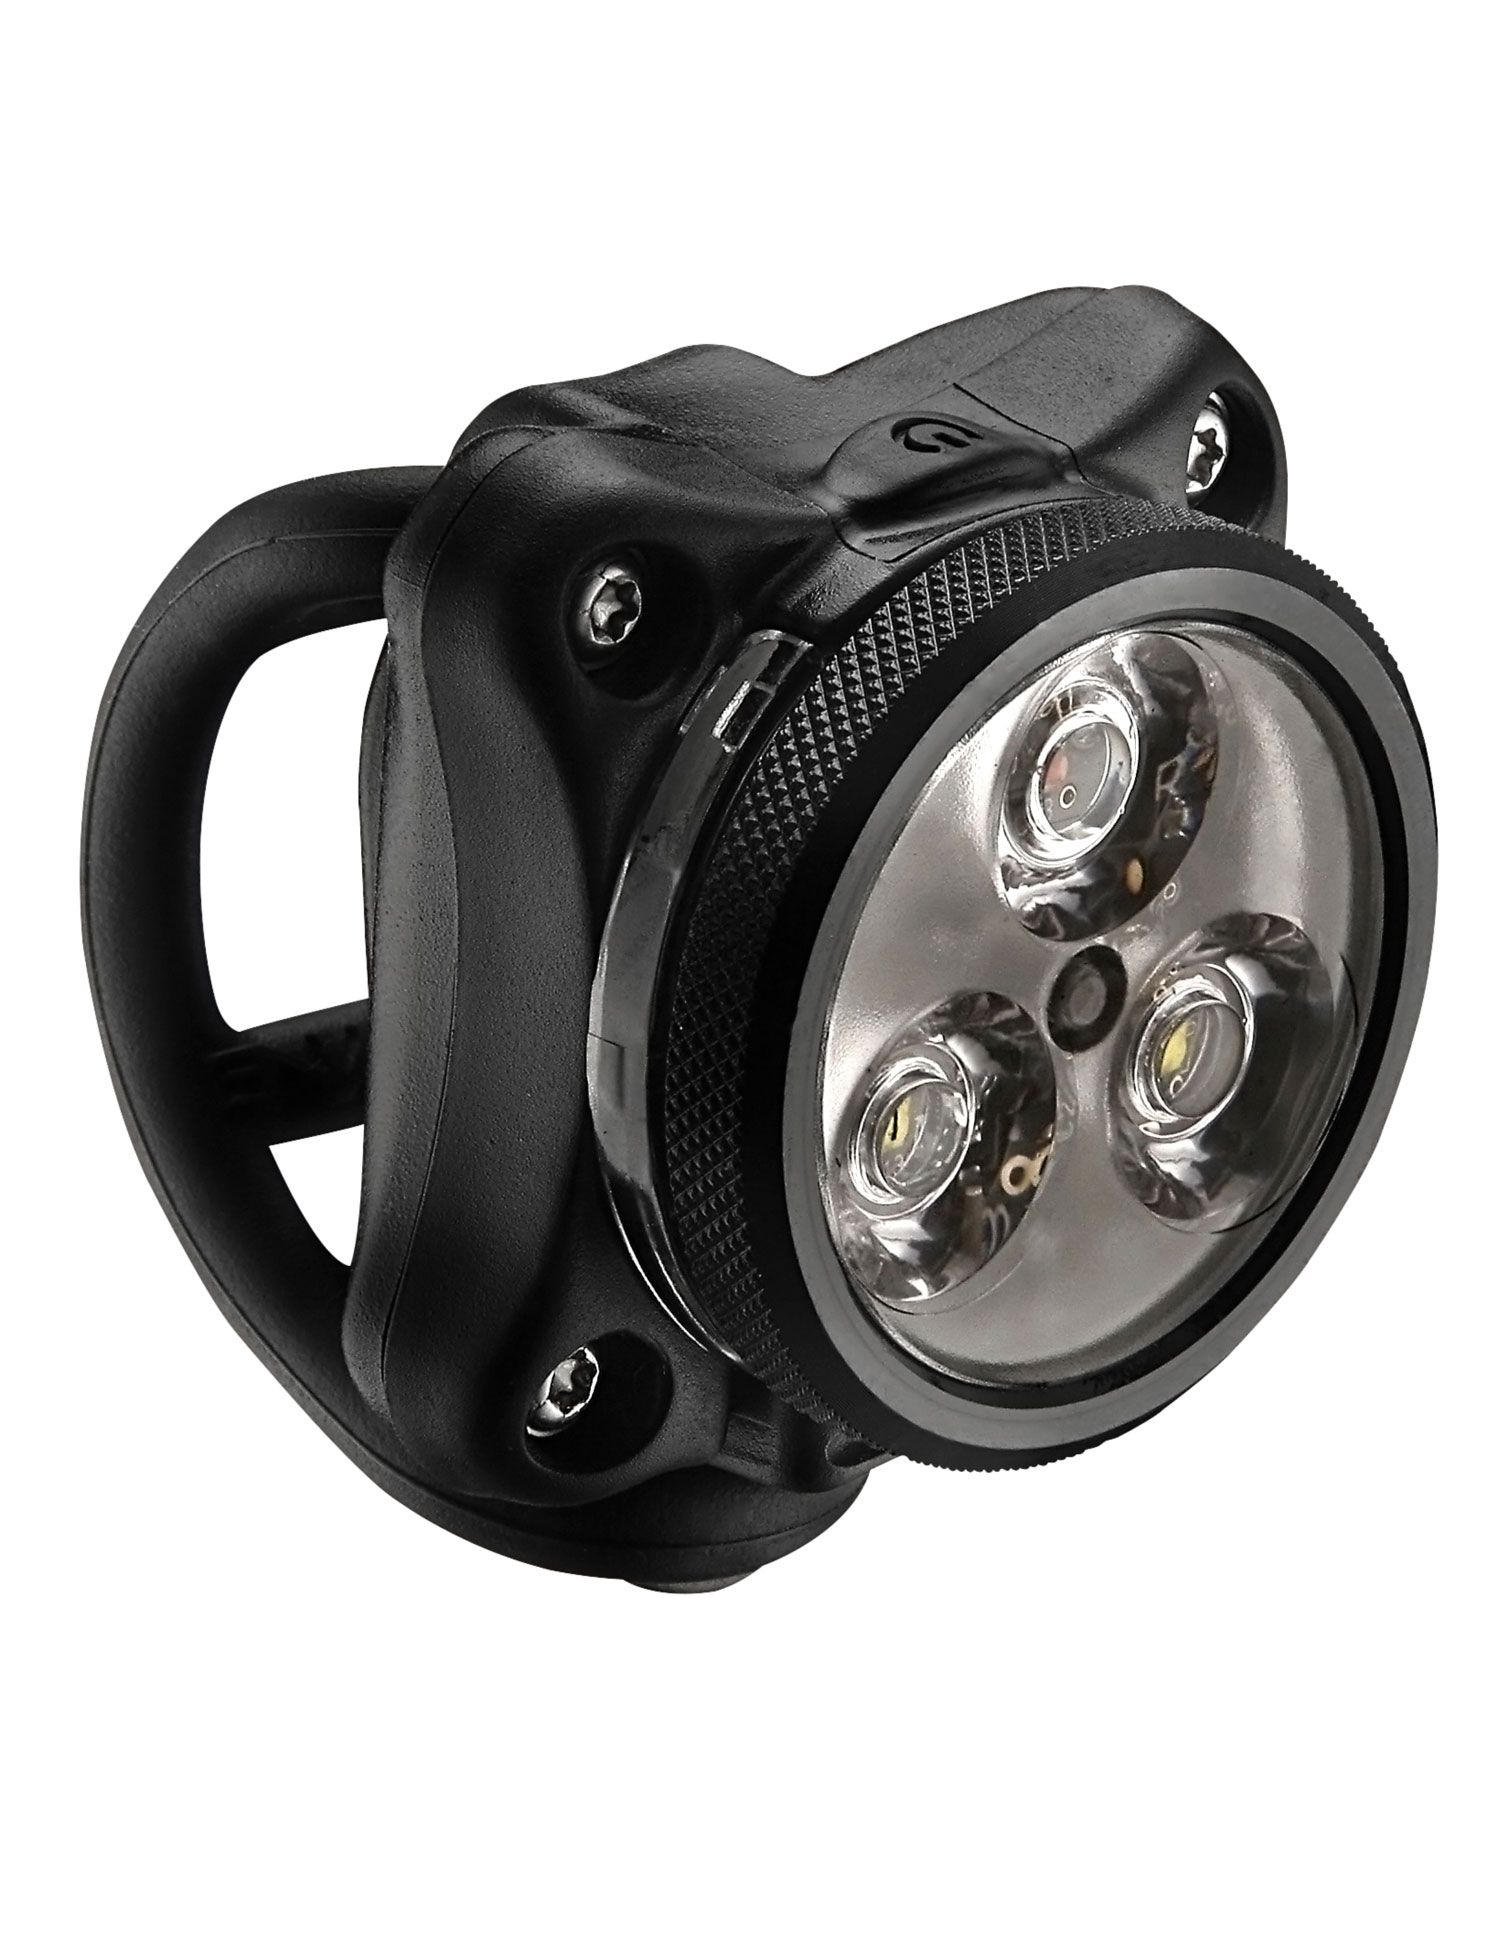 Lezyne Zecto Drive Pro Front LED Bike Light